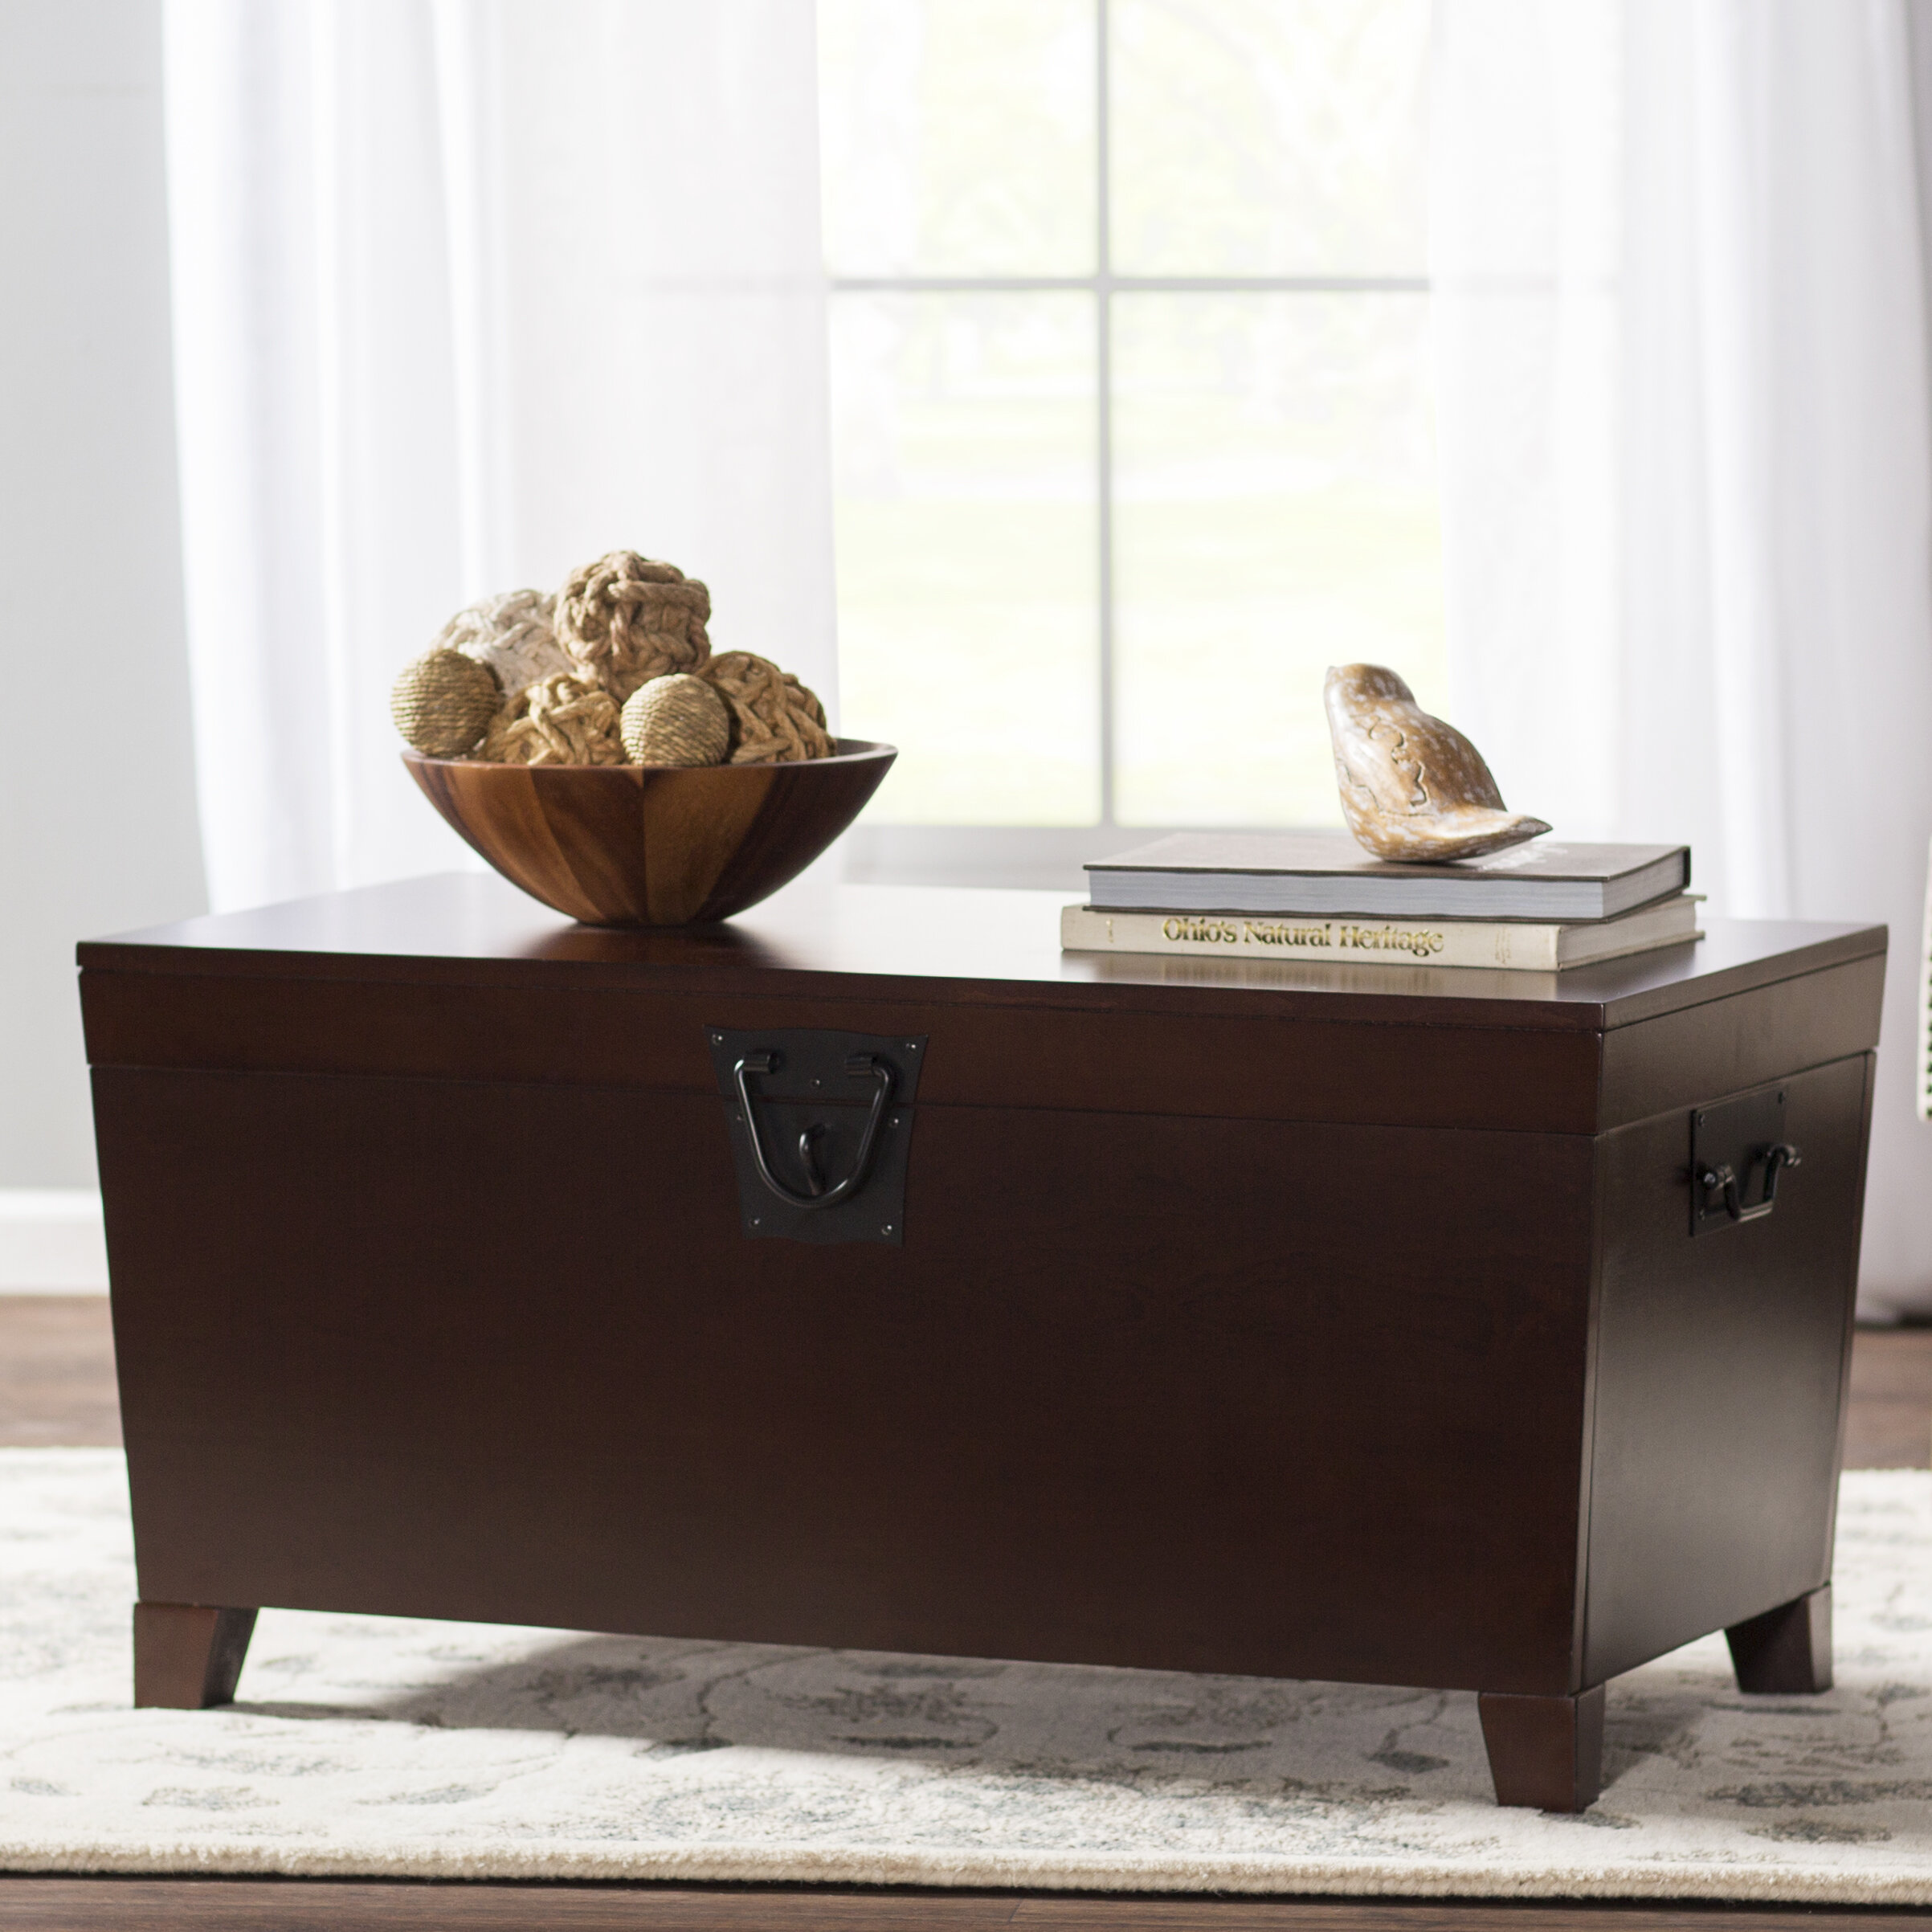 Beige Trunk Coffee Table: Charlton Home Bischoptree Storage Trunk Coffee Table